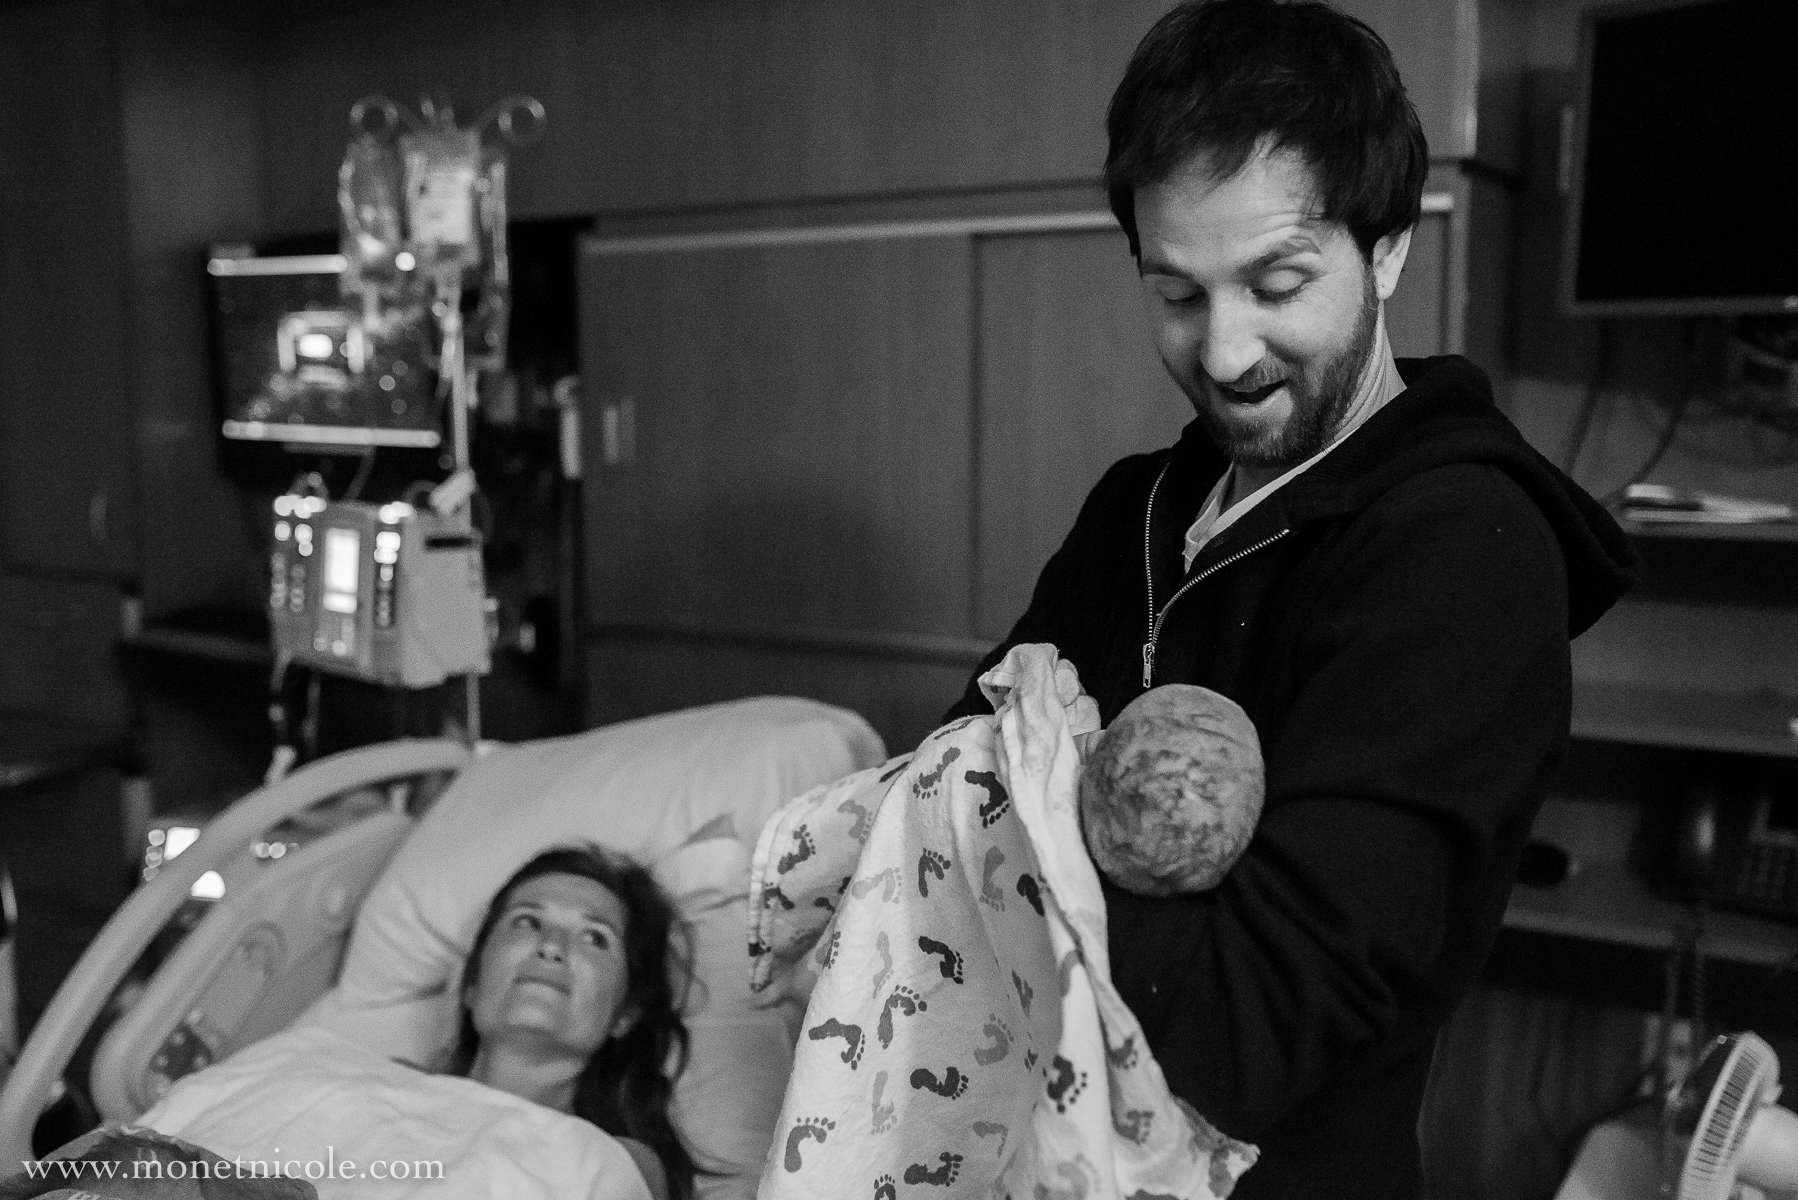 denver-birth-photography-hospital-birth-jace-father-holds-baby